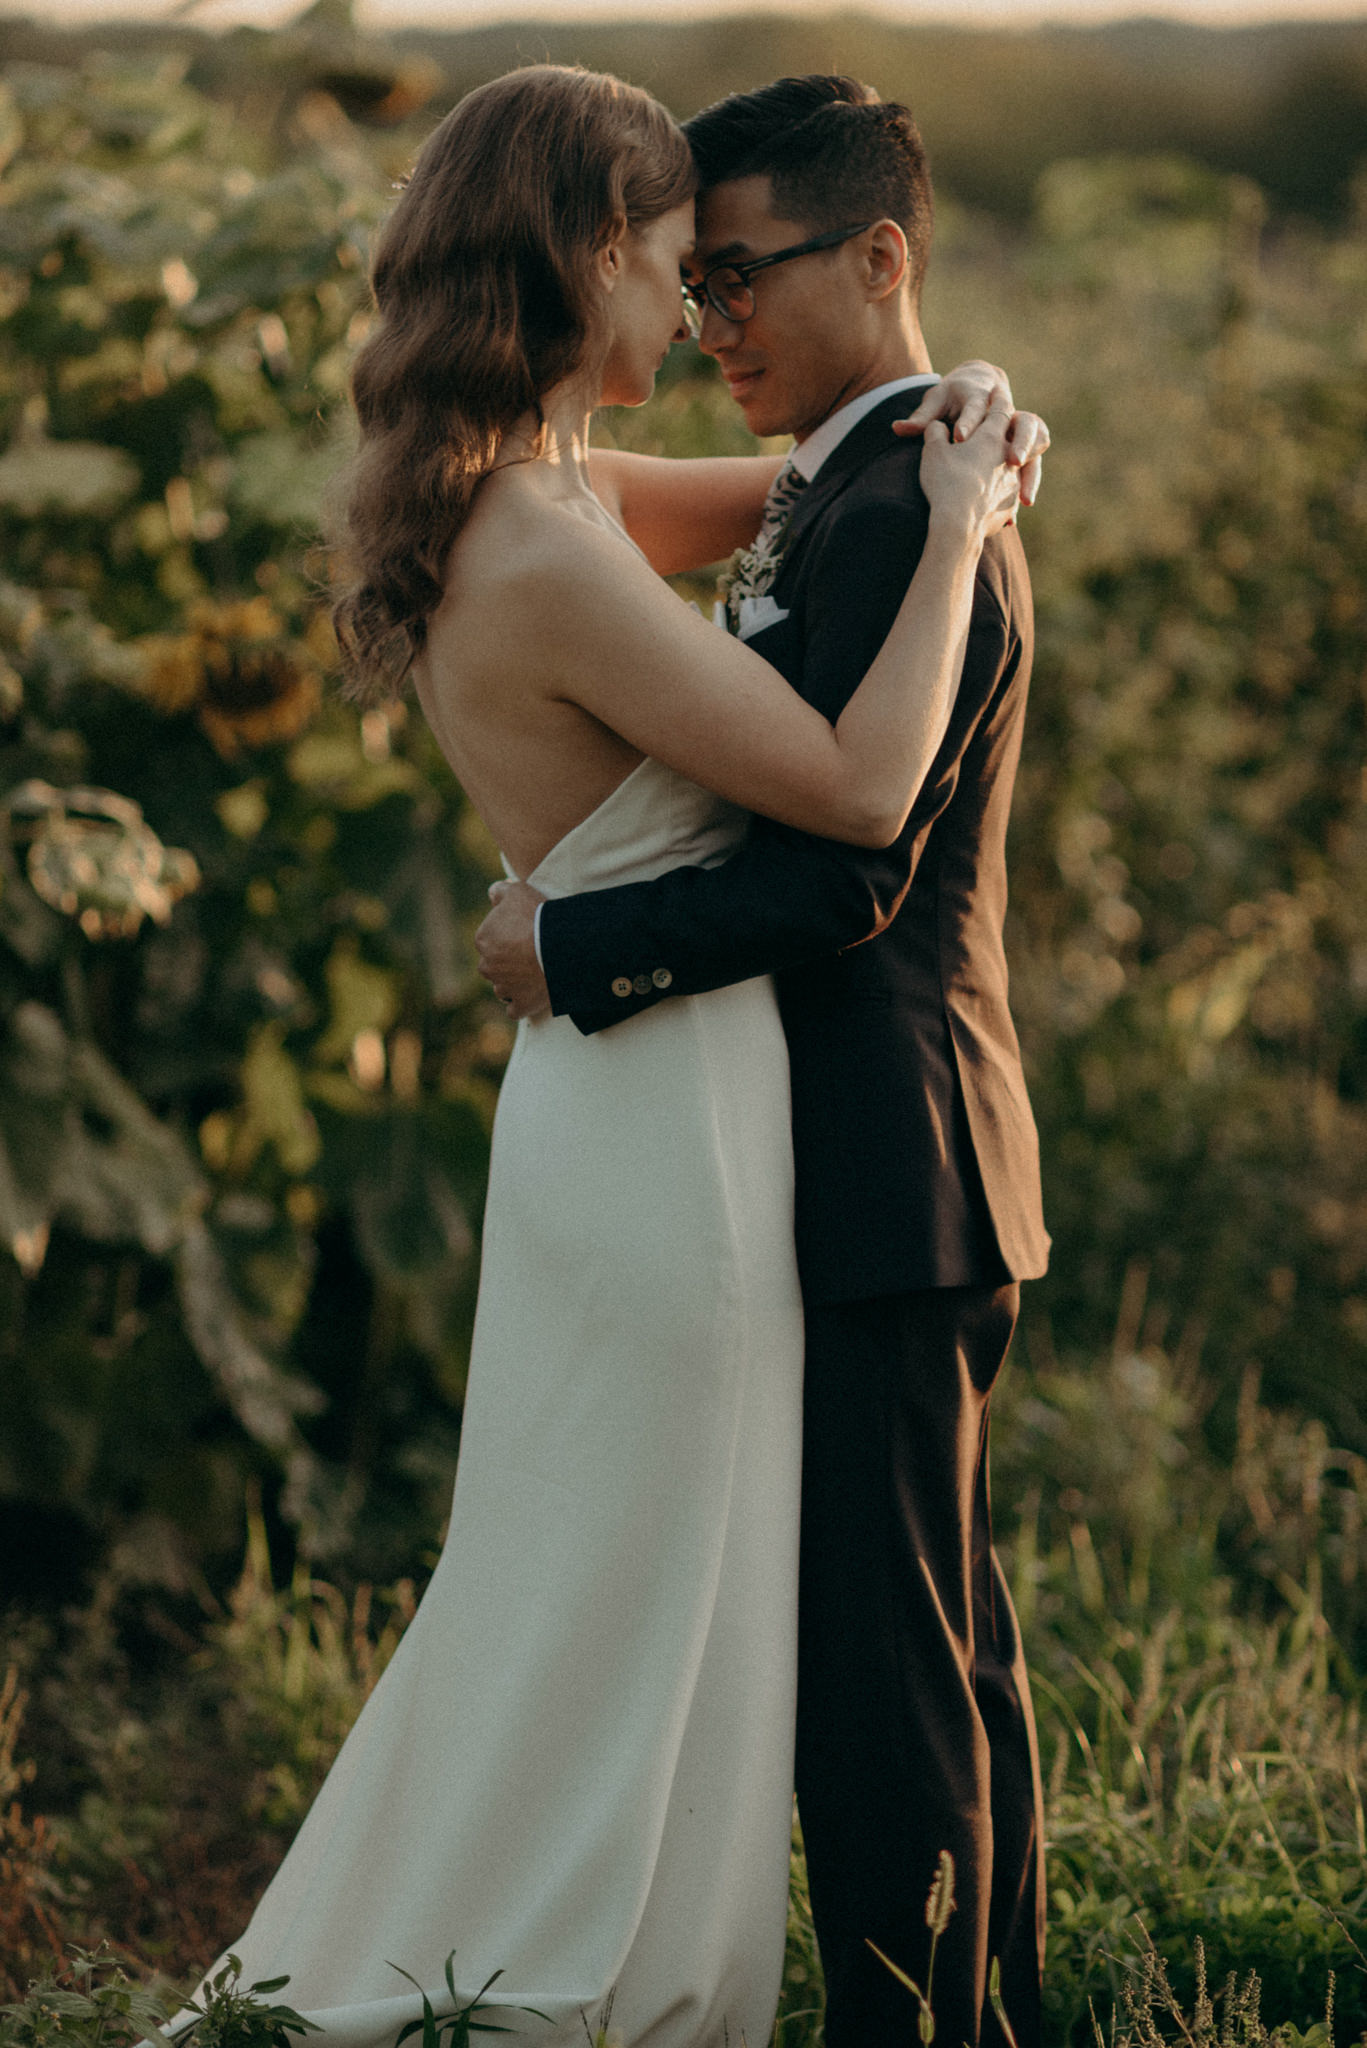 Wedding portraits by sunflowers at sunset